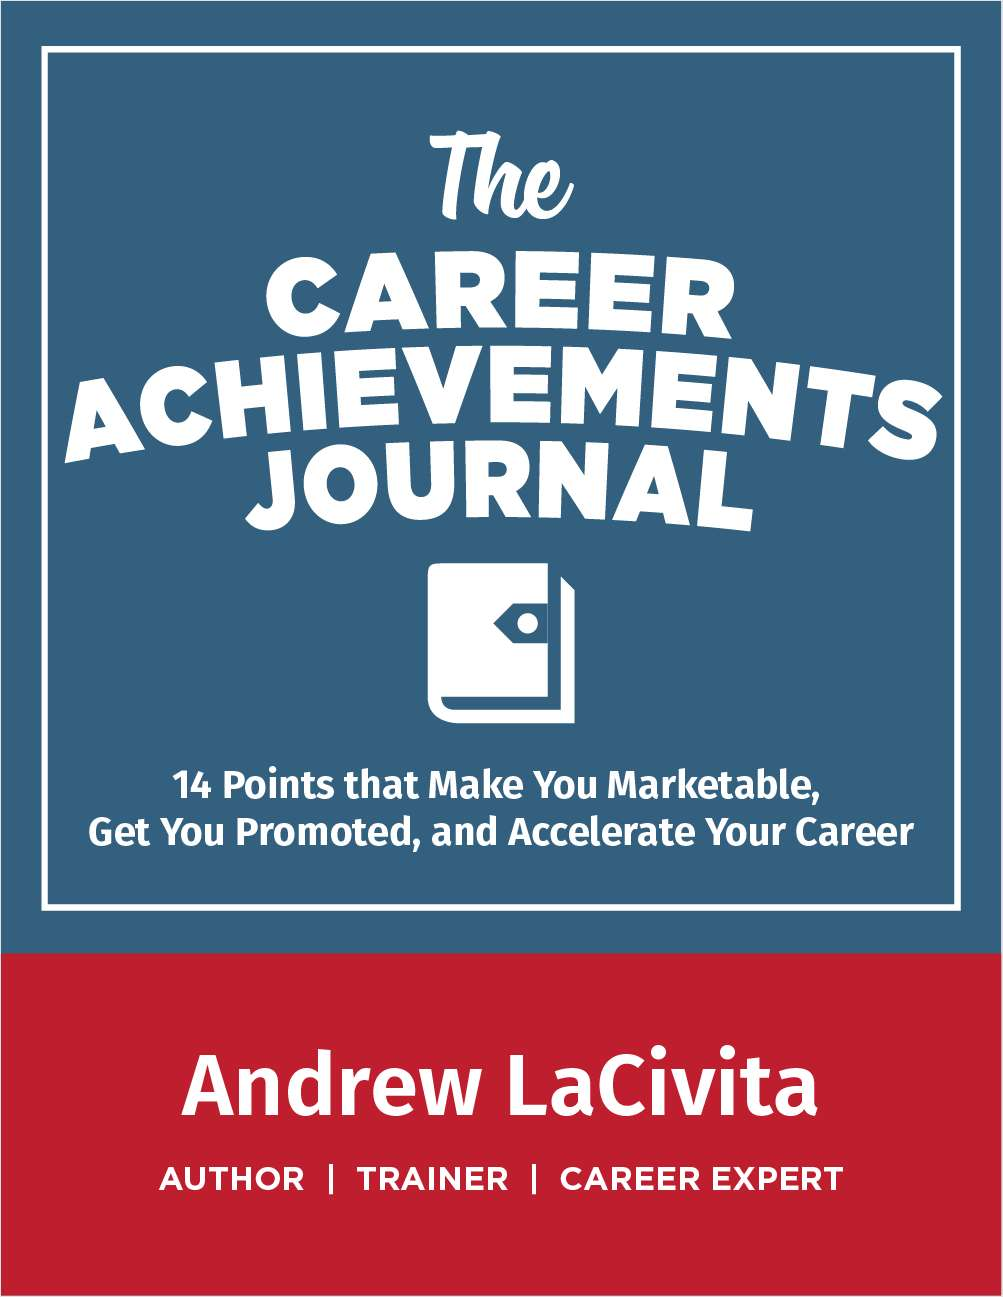 The Career Achievements Journal - 14 Points that Make You Marketable, Get You Promoted, and Accelerate Your Career